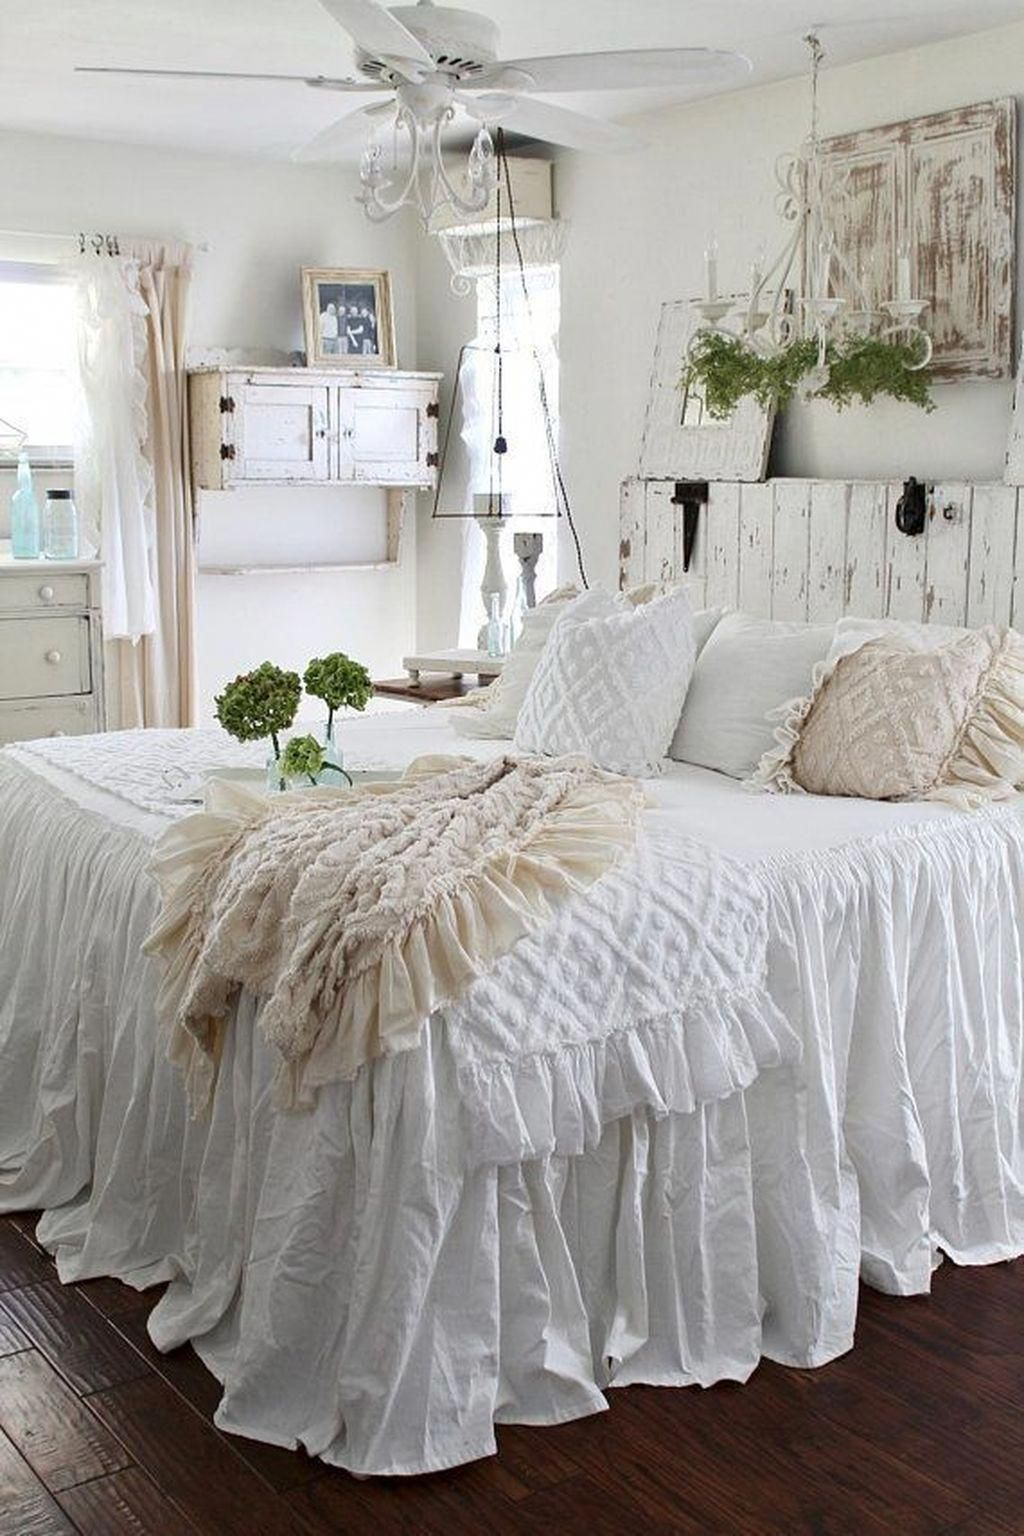 See more ideas about curtains, shabby chic, shabby chic curtains. Cool 47 Modern Shabby Chic Bedroom Ideas Shabbychichomes Shabby Chic Room Shabby Chic Bedrooms Modern Shabby Chic Bedroom